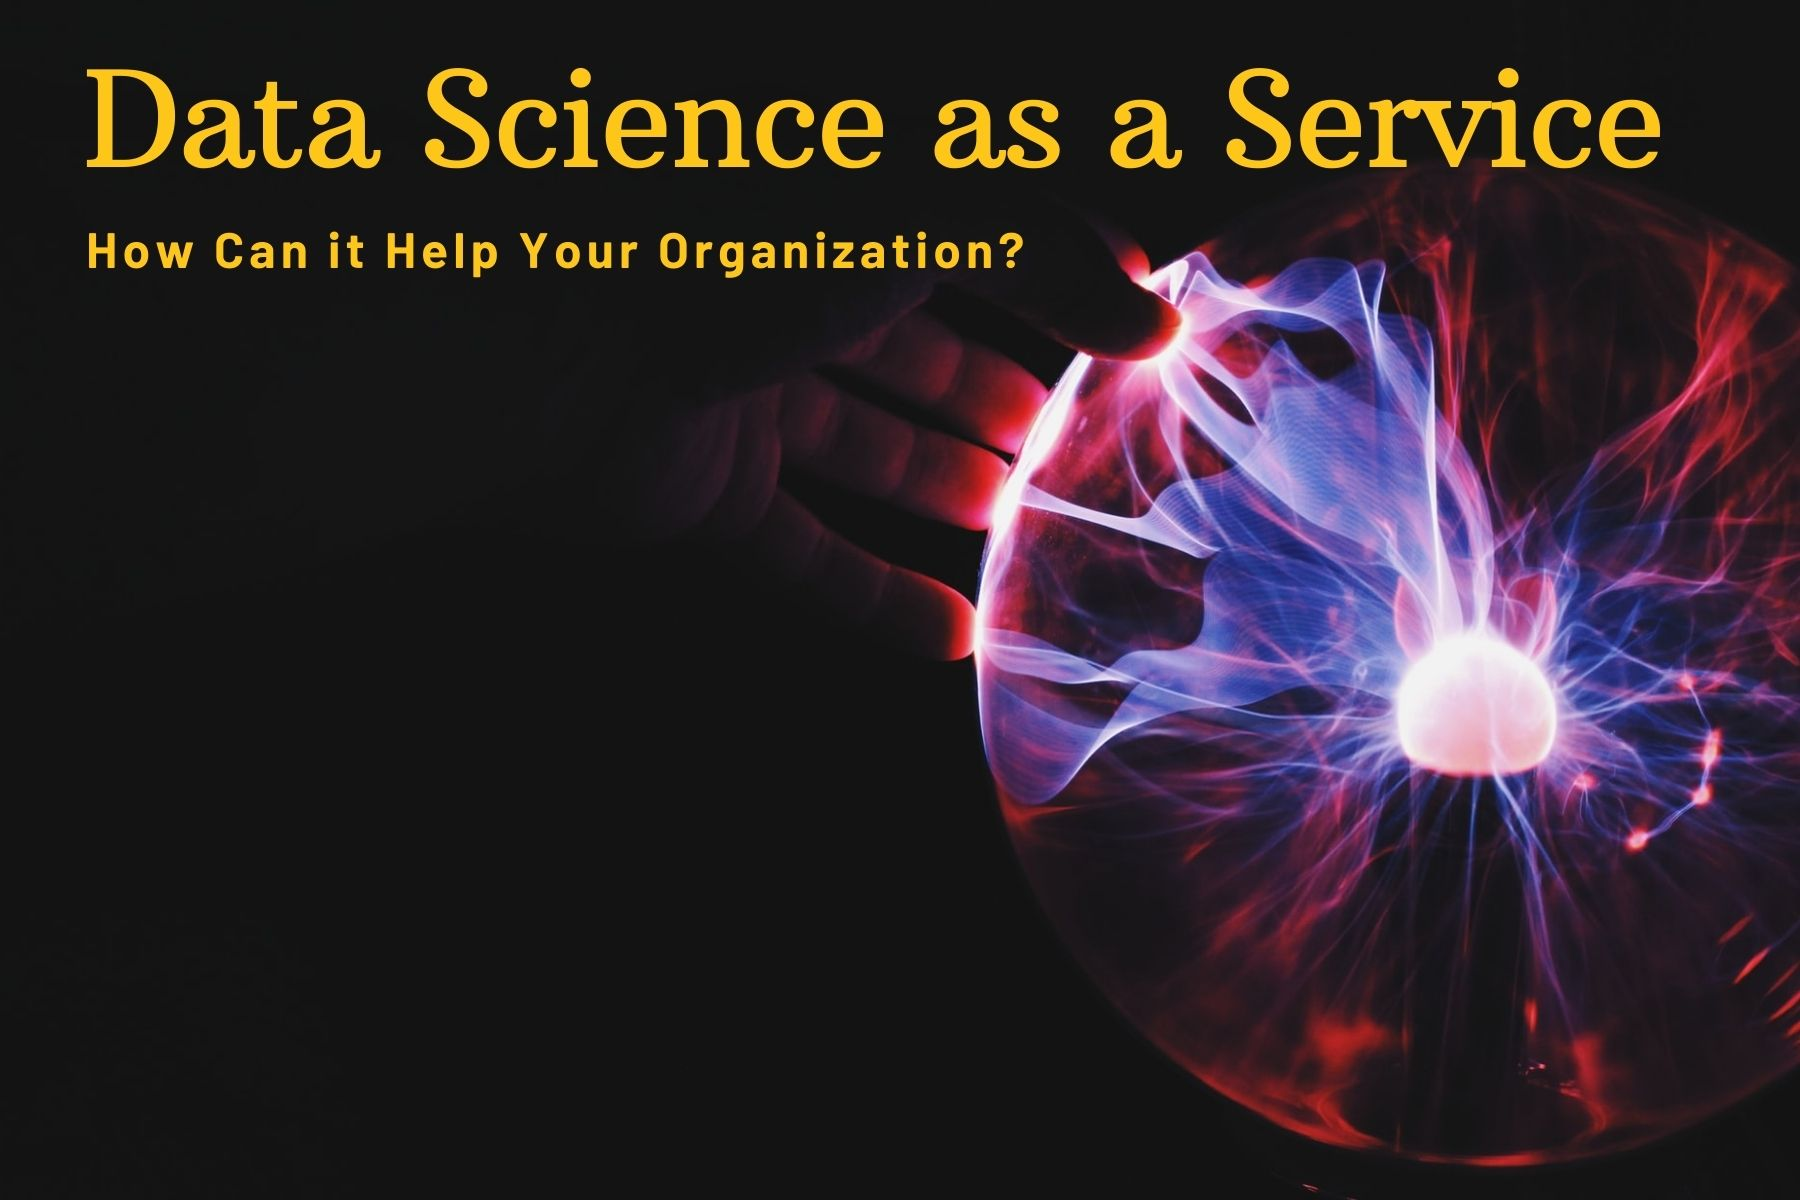 Data Science as a Service